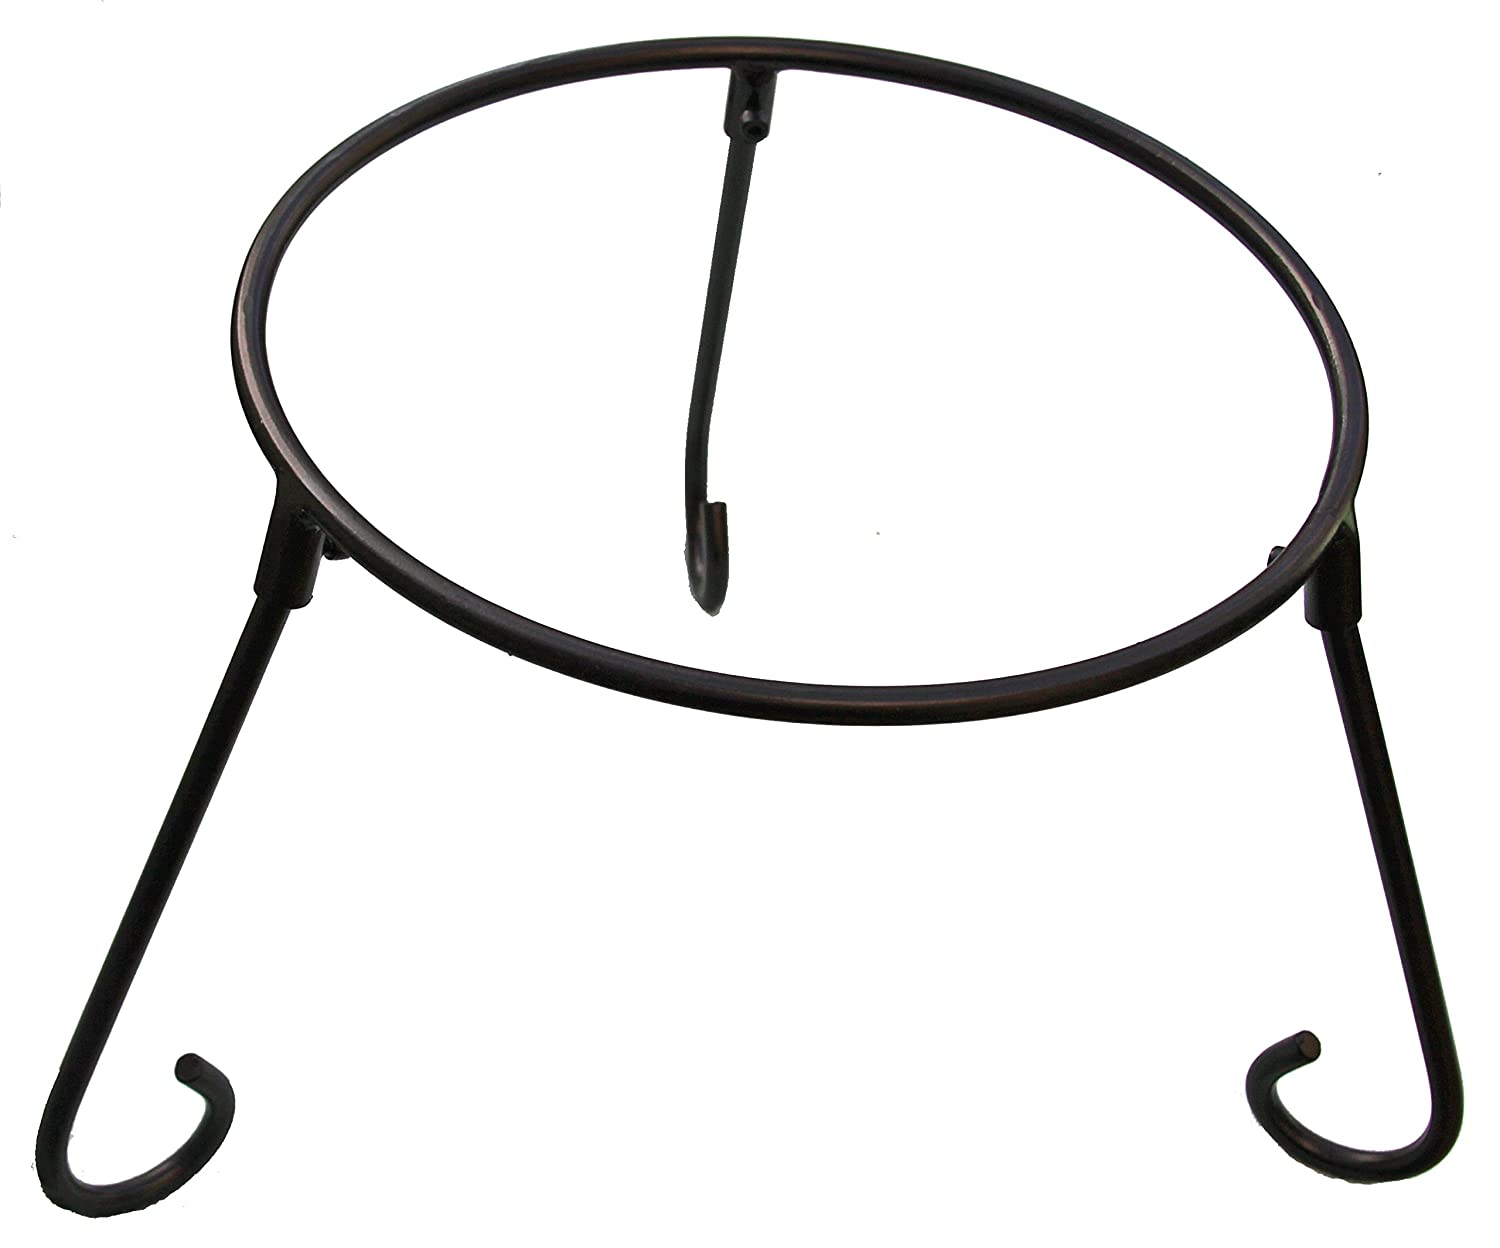 Black Gardeco S3-STRONG Extra-Strong Stable Stand for X-Large and Jumbo Chimeneas